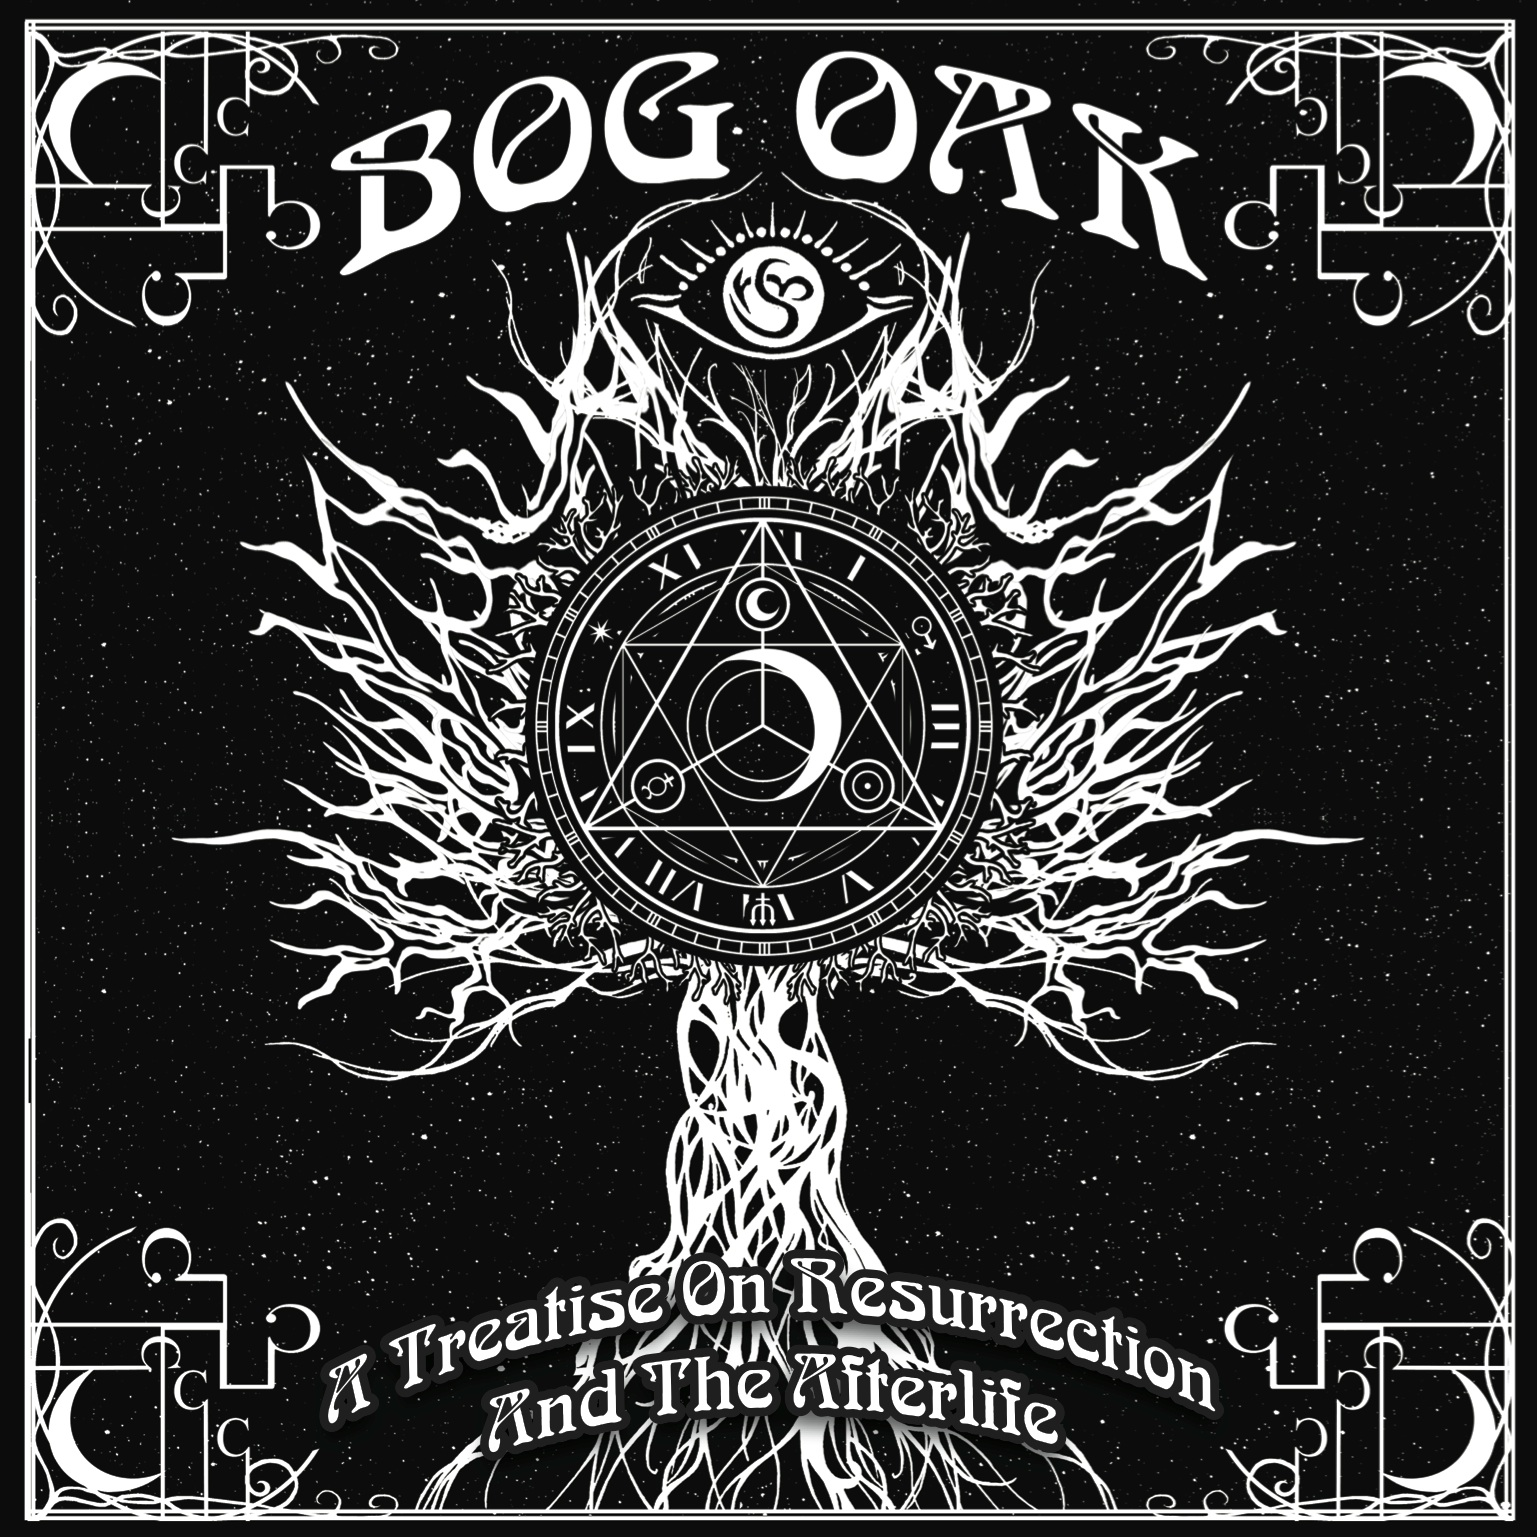 Bog Oak – A Treatise on Resurrection and the Afterlife Review